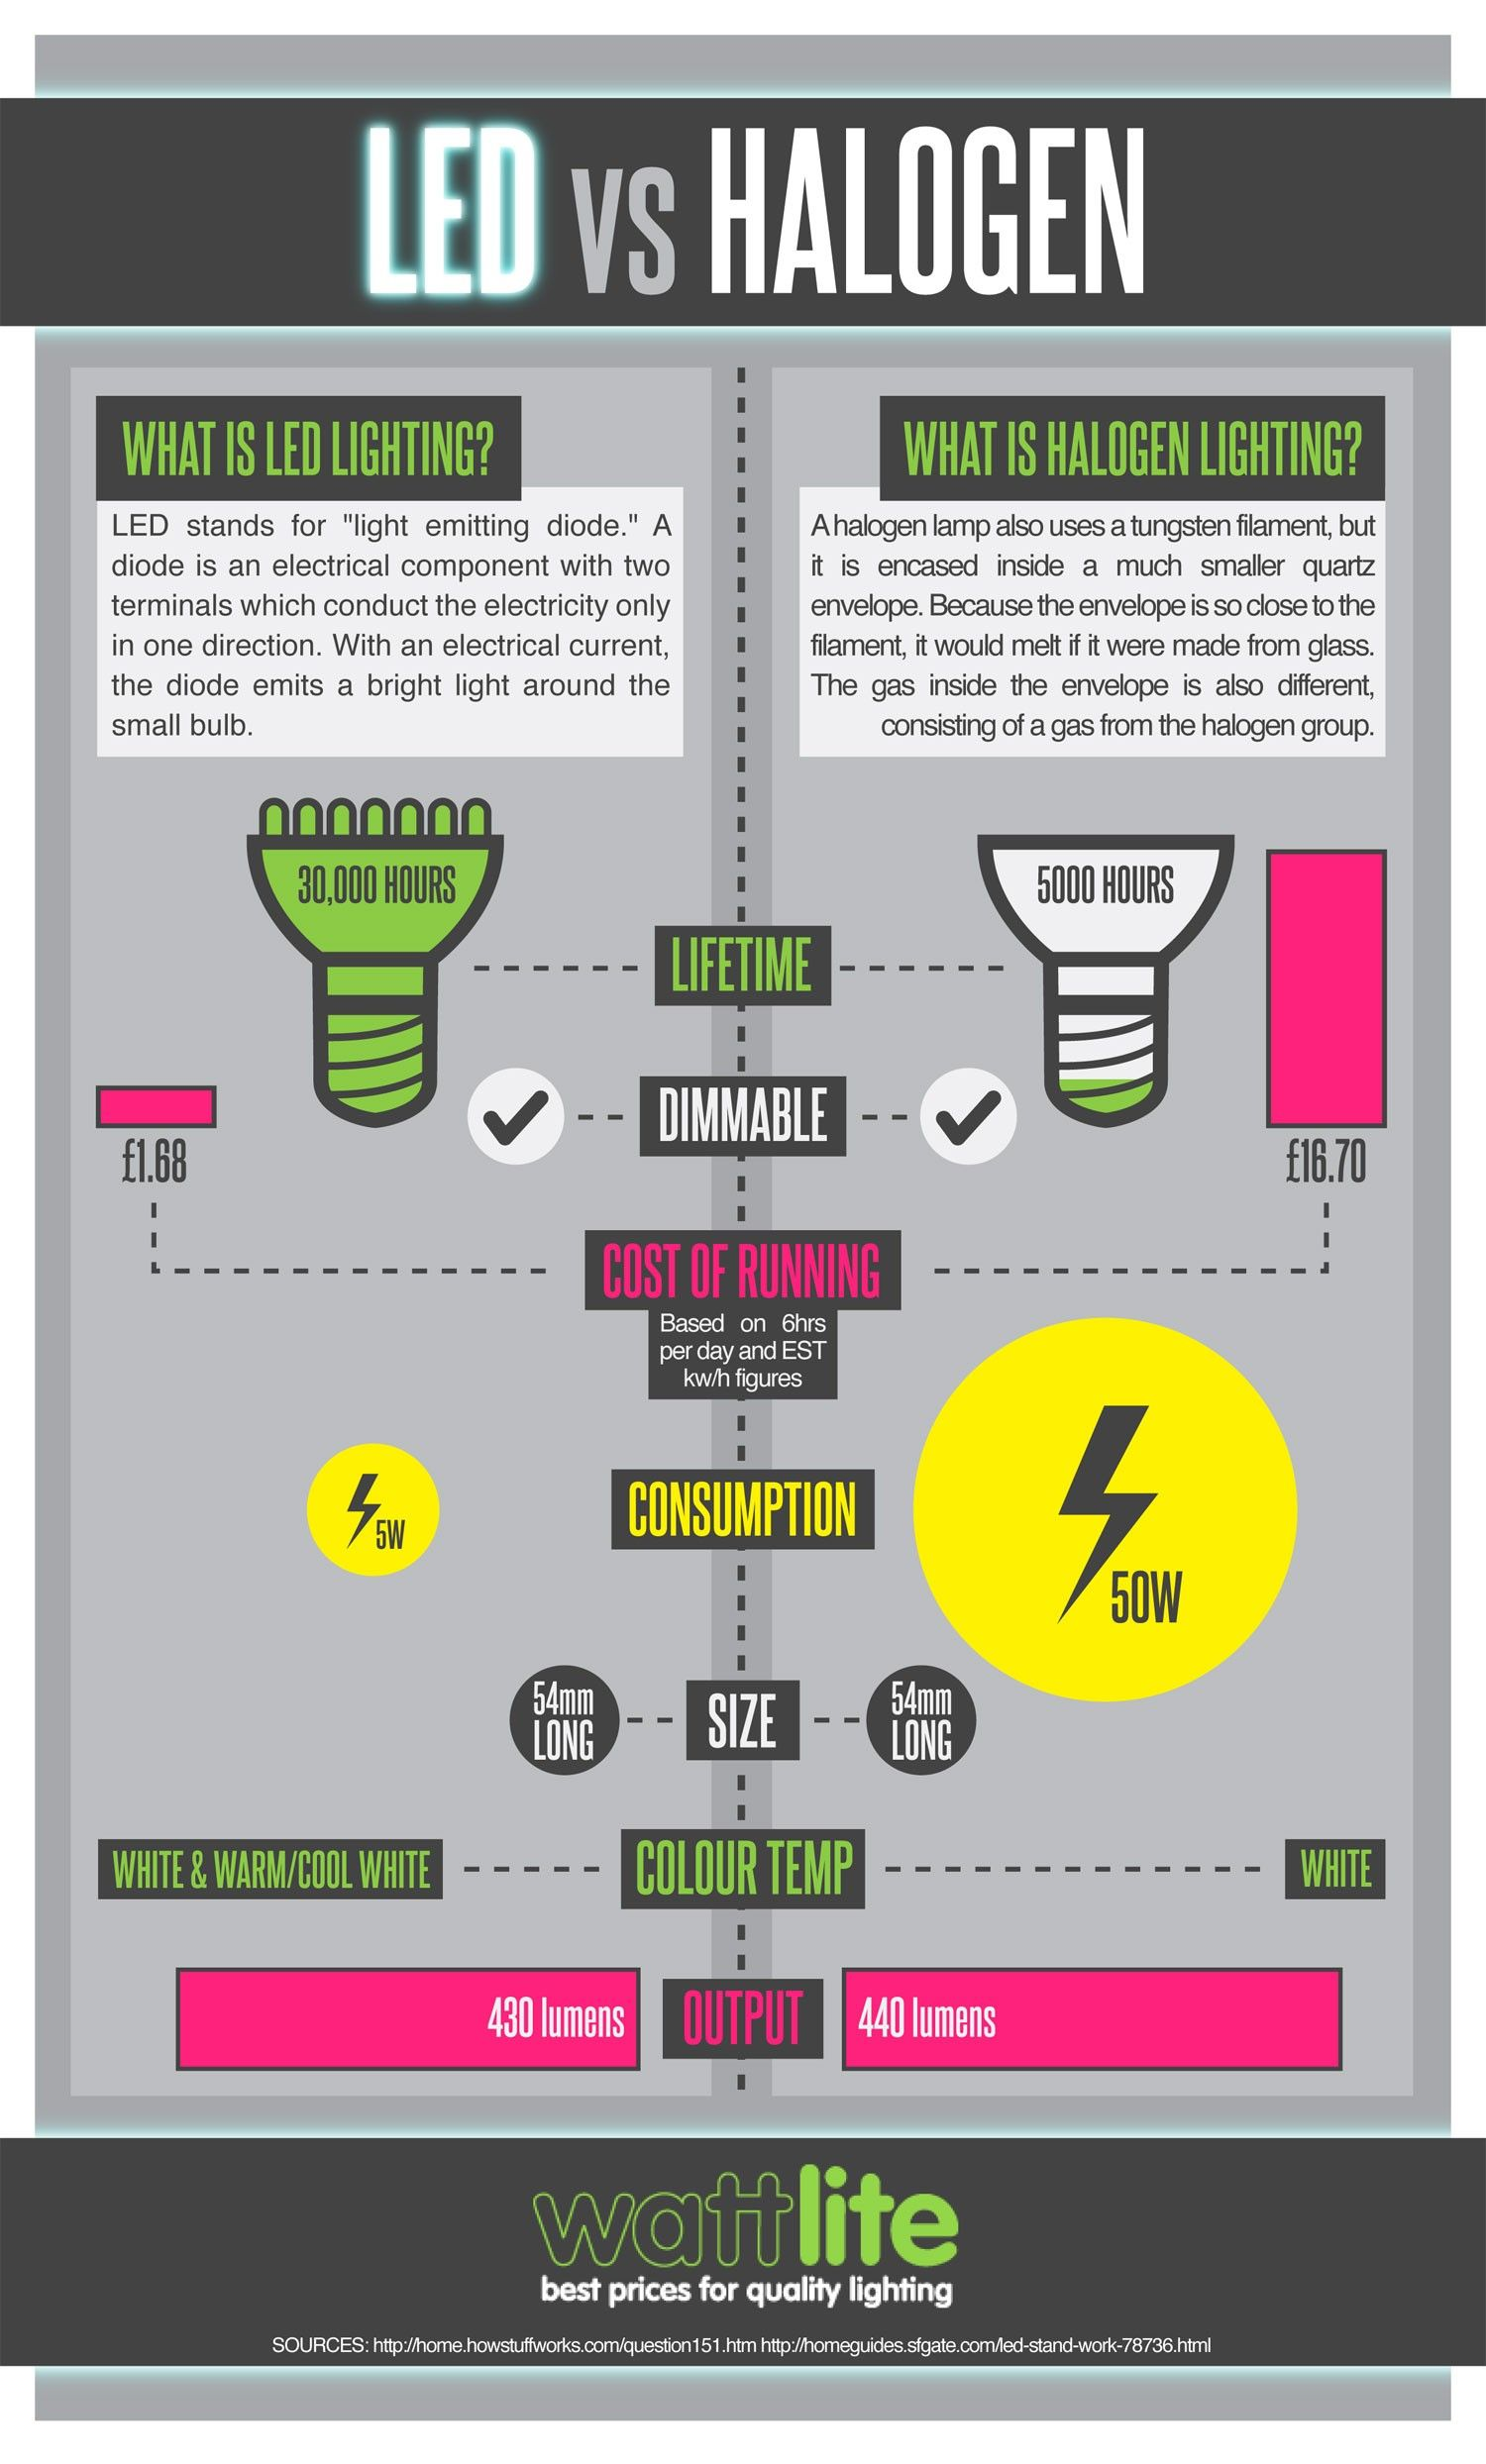 LED vs Halogen Infographic Halogen, Energy saving tips